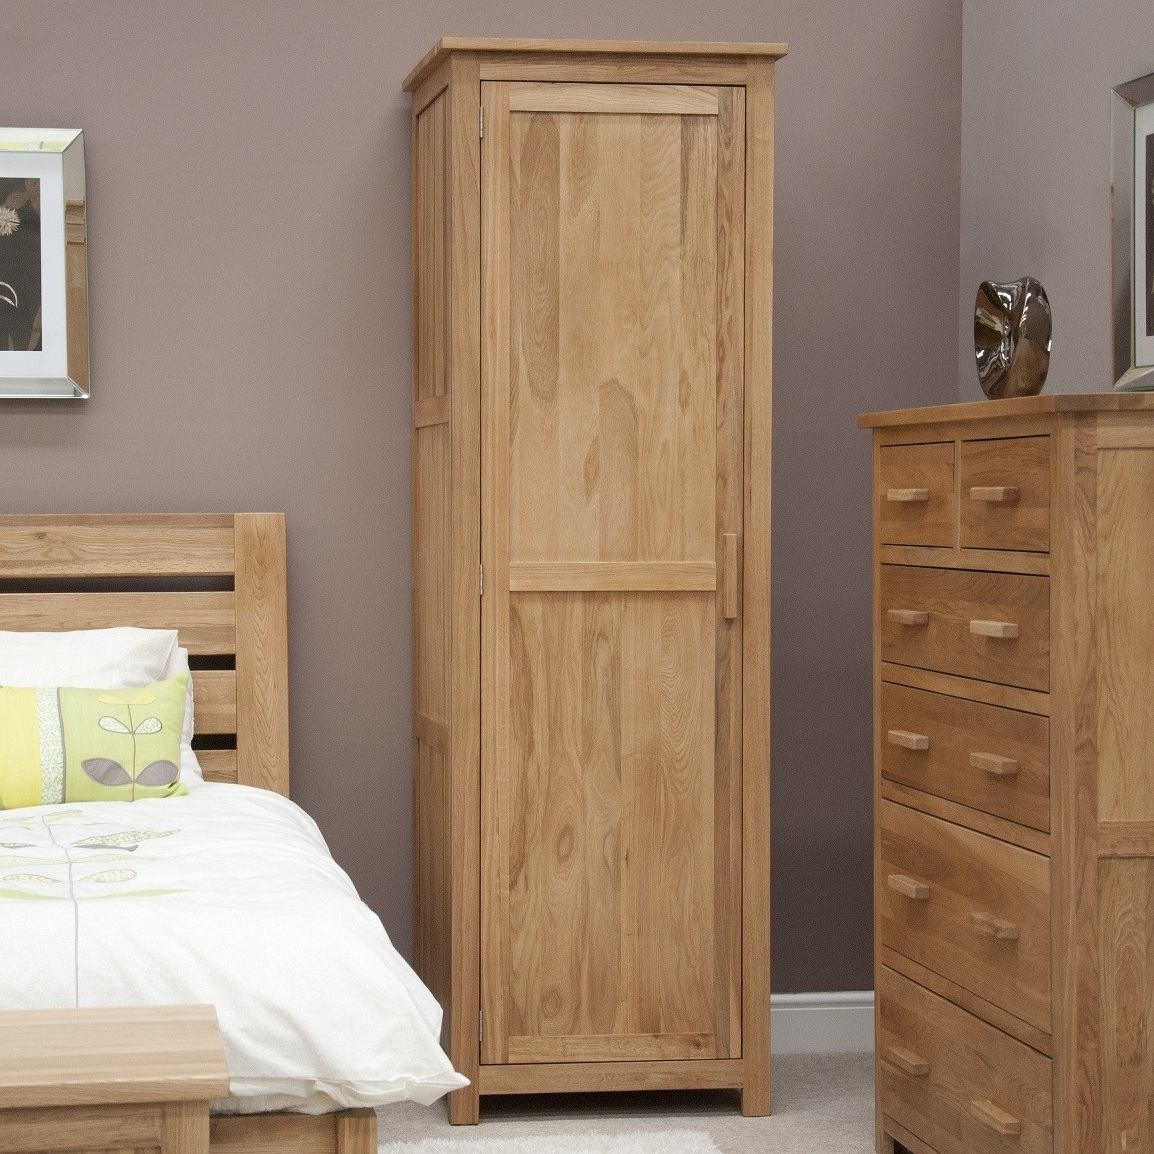 Most Recent Small Single Wardrobes Inside Single Wardrobe With Drawers And Shelves Uk Small Oak Cheap This (View 7 of 15)